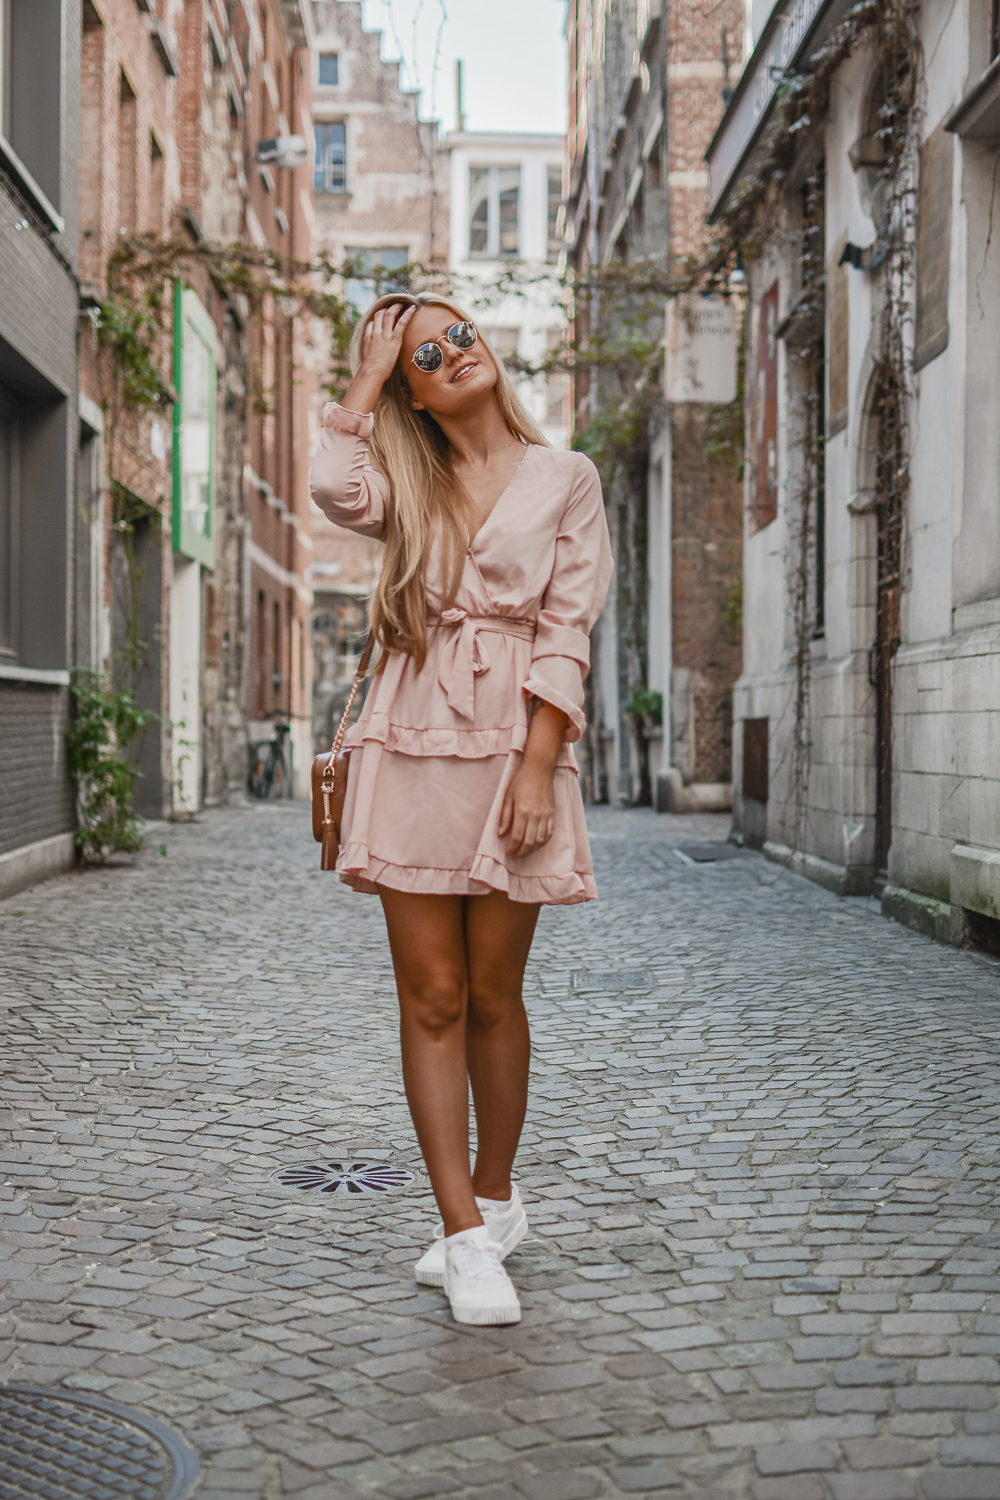 Outfit: Yes to the Pink Dress